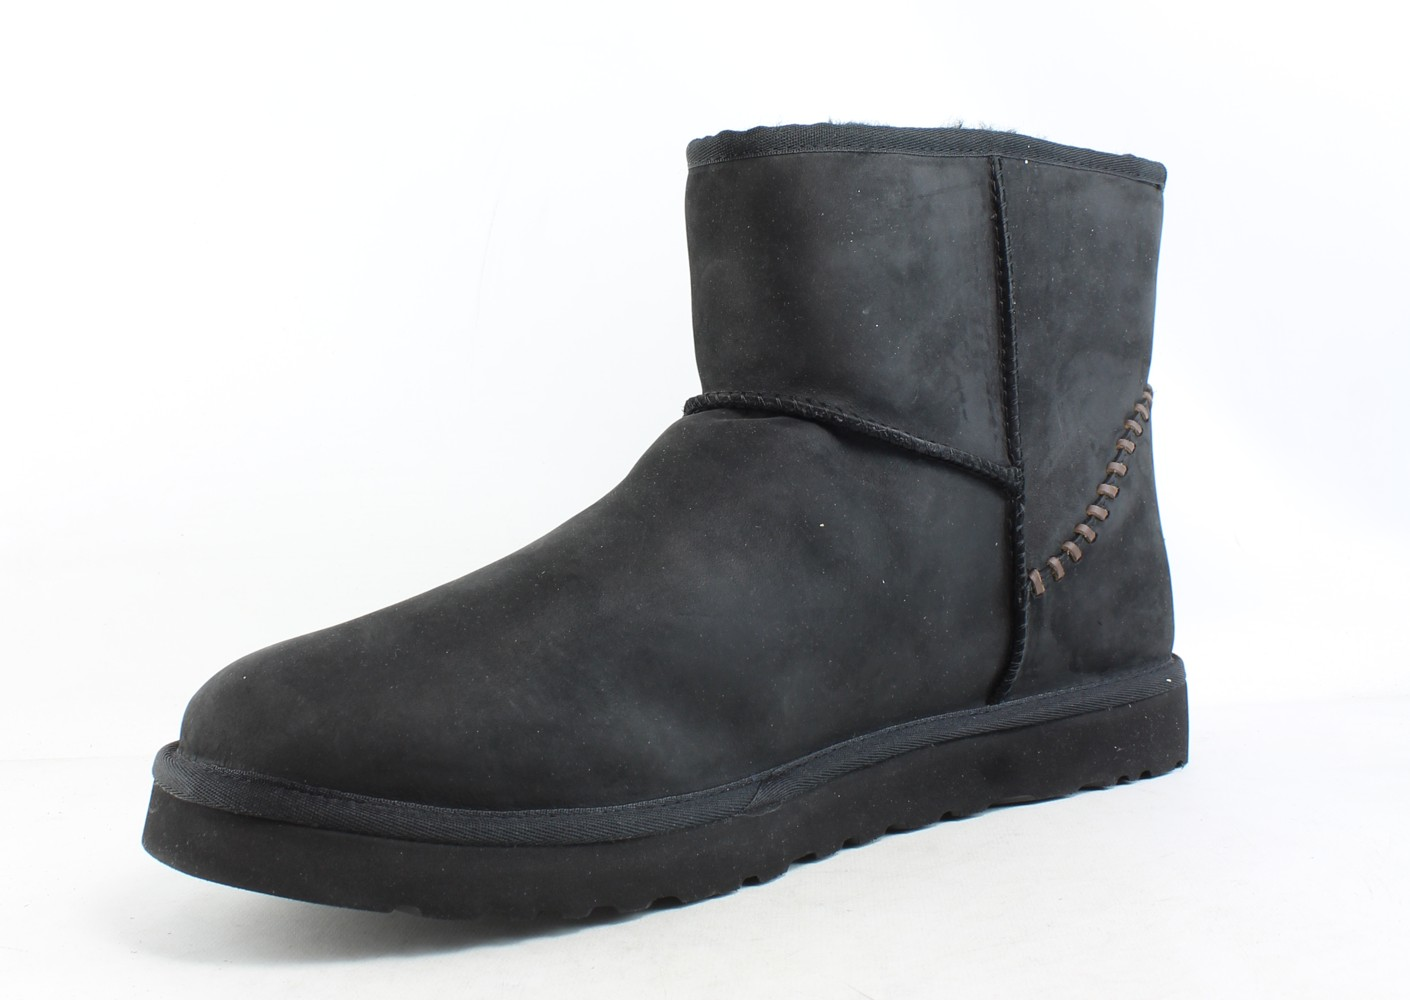 4c70ab39984 Details about UGG Mens Classic Mini Deco Black Snow Boots Size 17